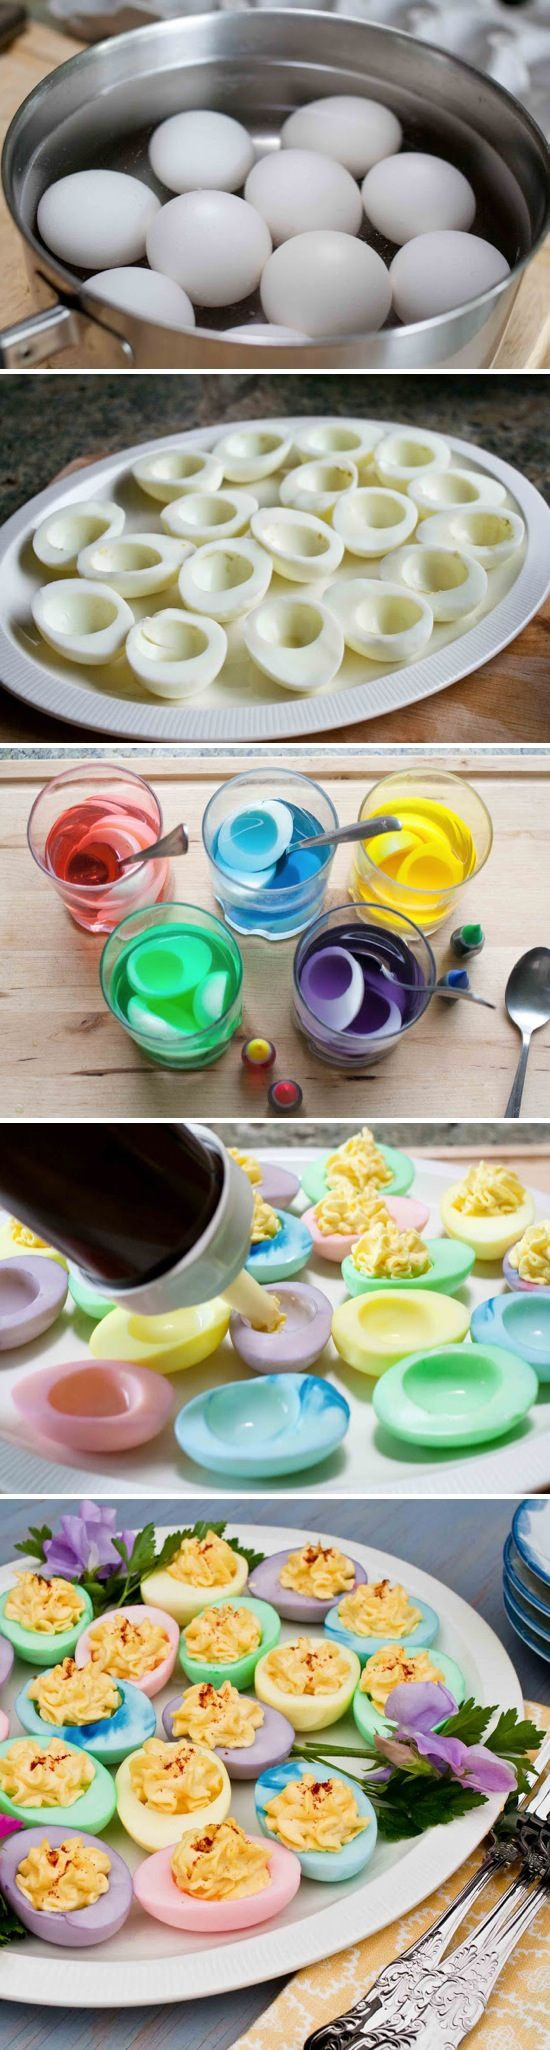 Easter Colored Deviled Eggs  Colorful Deviled Eggs